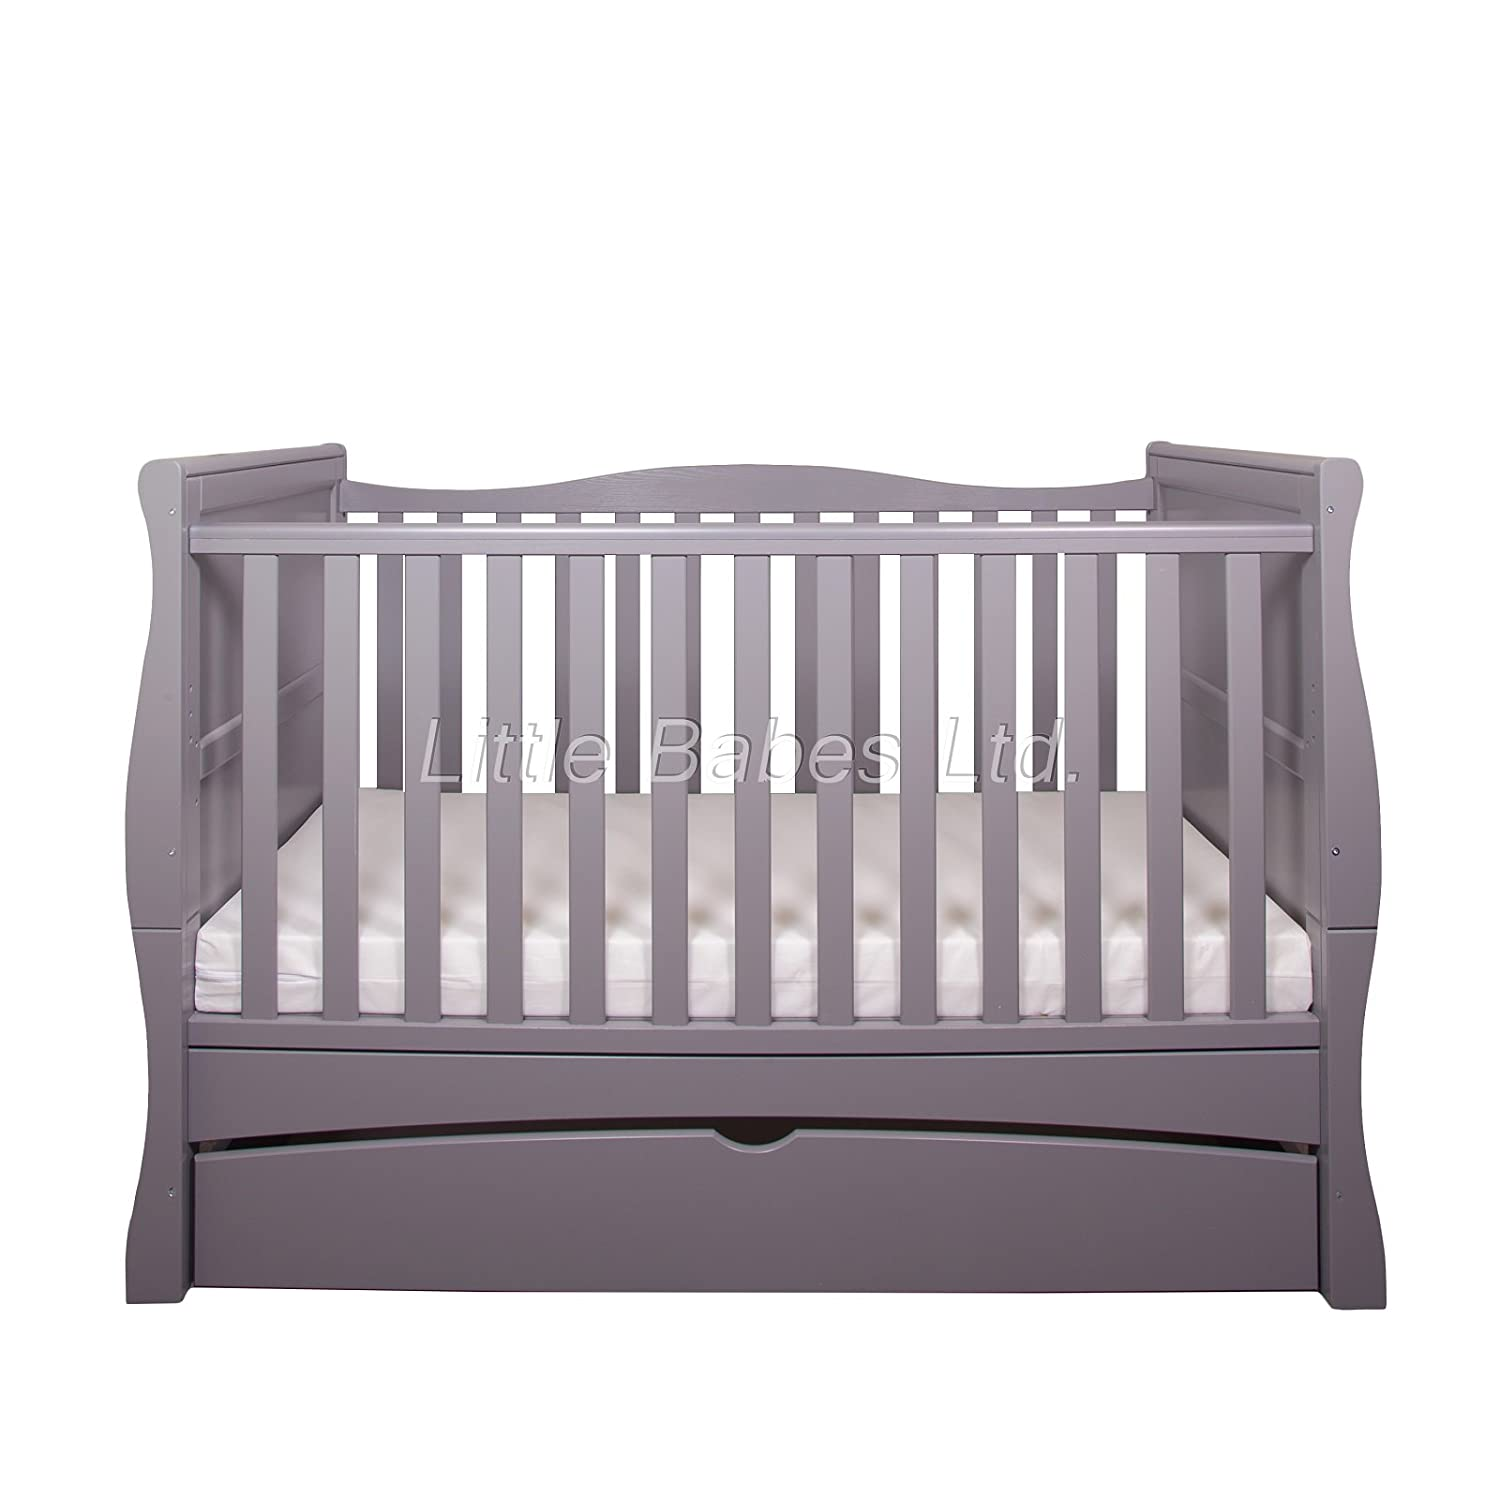 New Baby Grey Sleigh Mason Cot Bed with Drawer Only - Converts to Junior Bed/Toodler Bed (Require Mattress 140x70x10cm) Little Babes Ltd